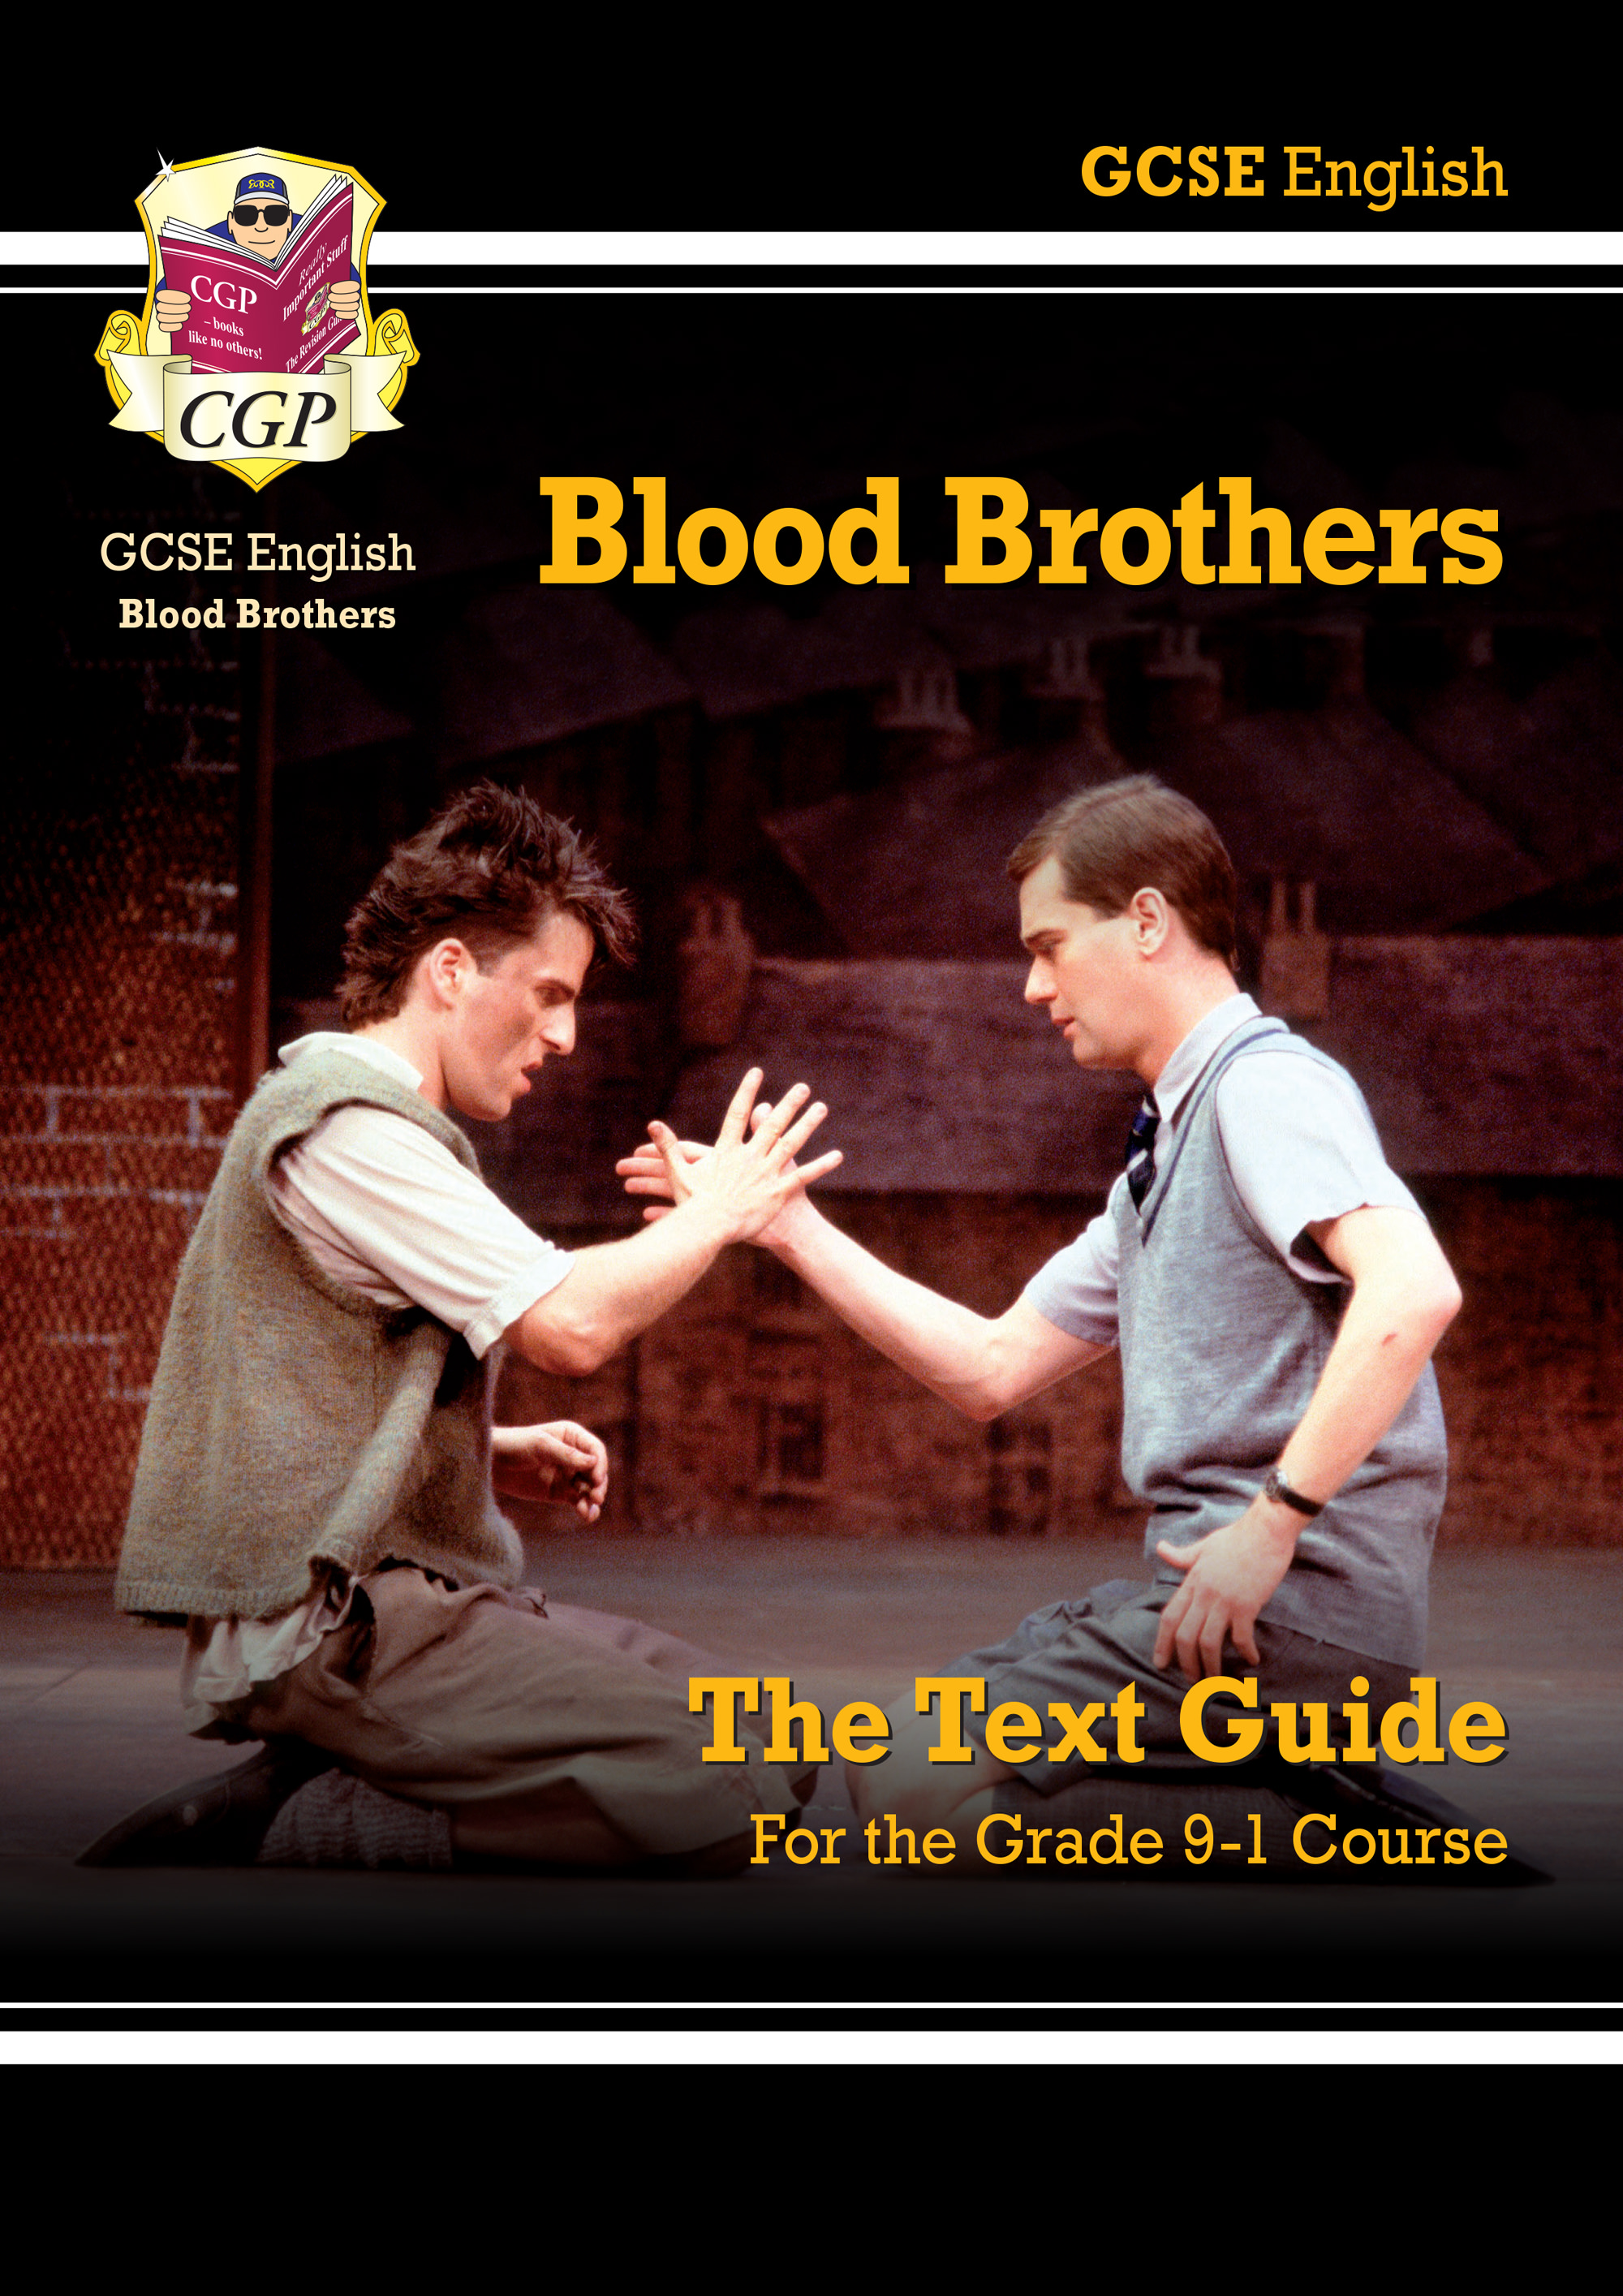 ETBB41 - Grade 9-1 GCSE English Text Guide - Blood Brothers